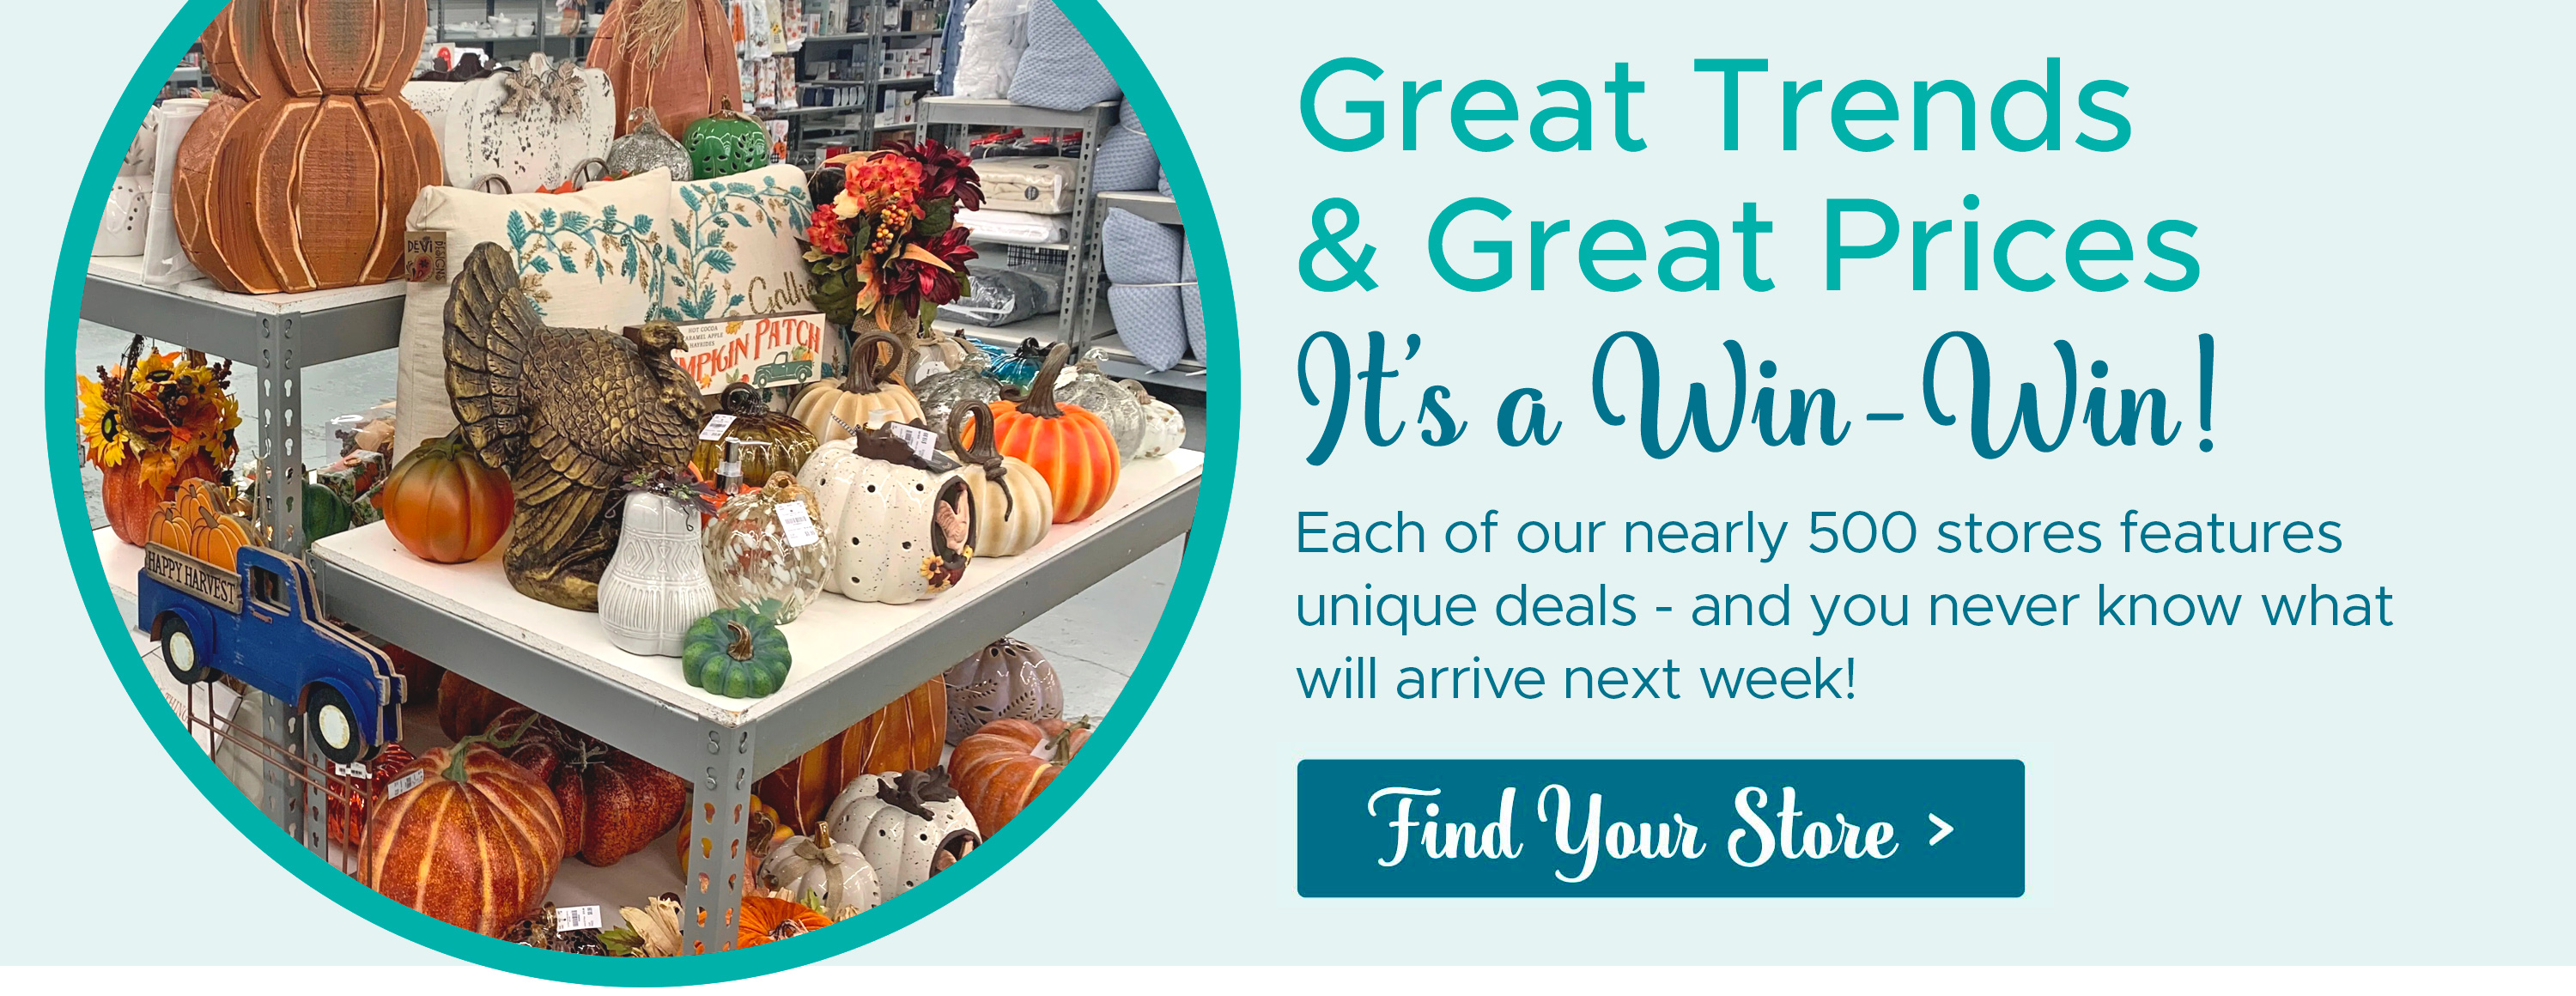 Great Finds & Great Prices - It's a Win-Win! Each of our nearly 500 stores features unique deals - and you never know what will arrive next week! Find Your Store >